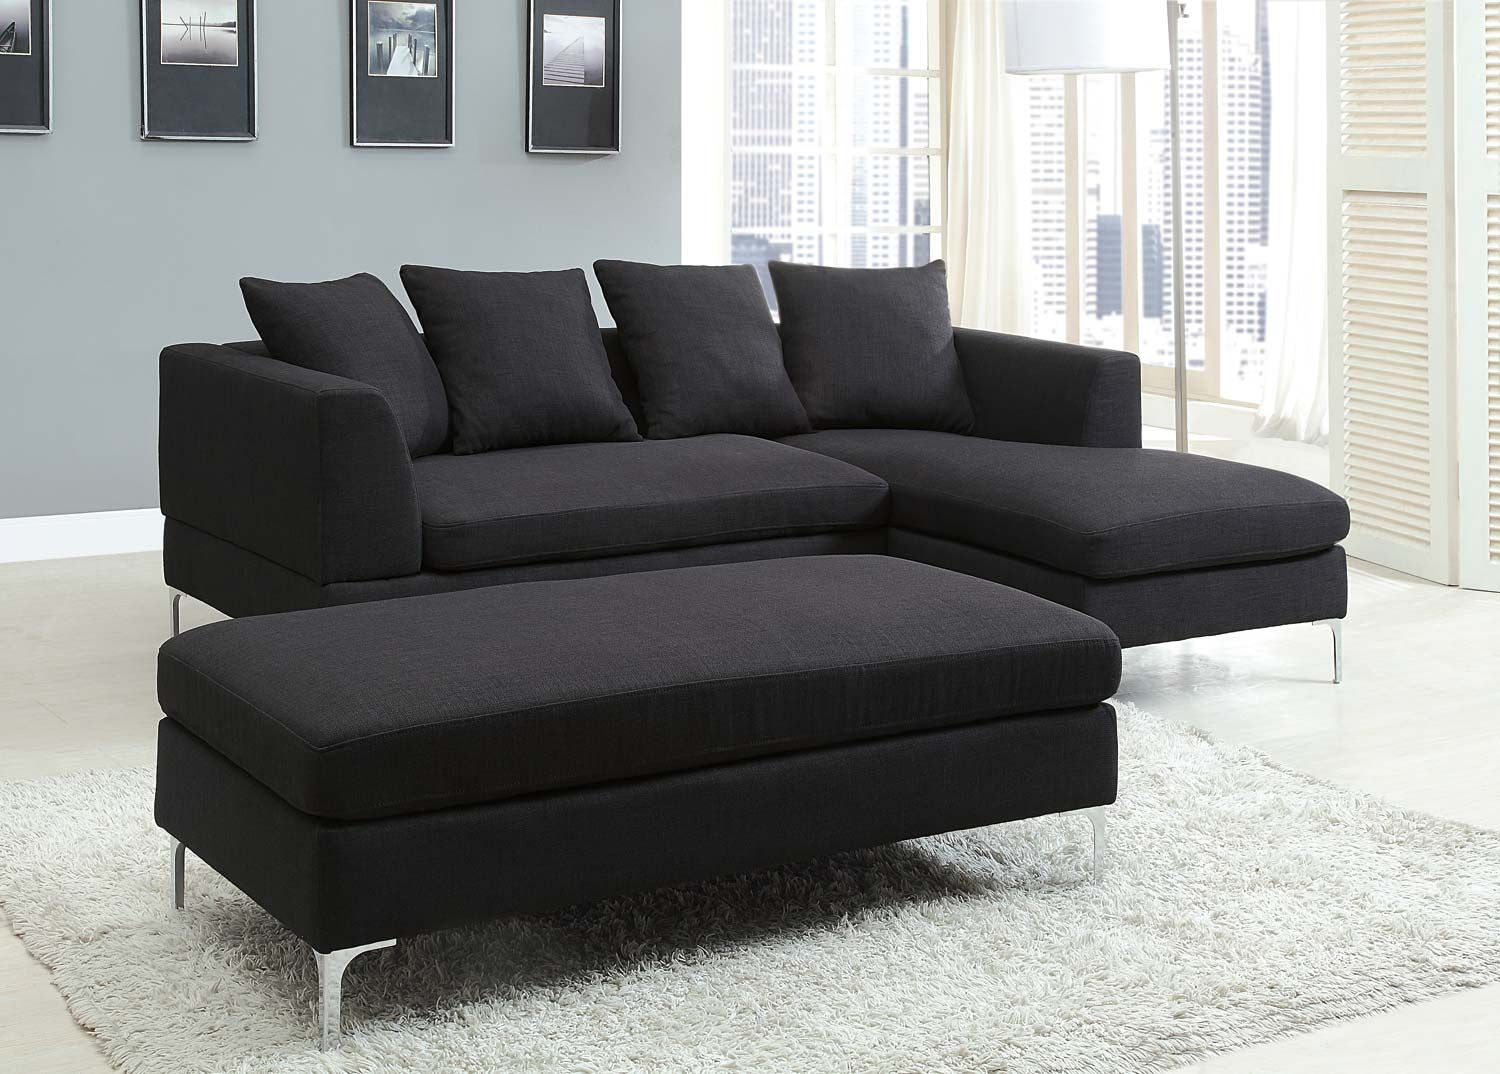 black sectional sofa black sofas pinterest black sectional rh pinterest co uk black sofa sectionals black sofa sectionals